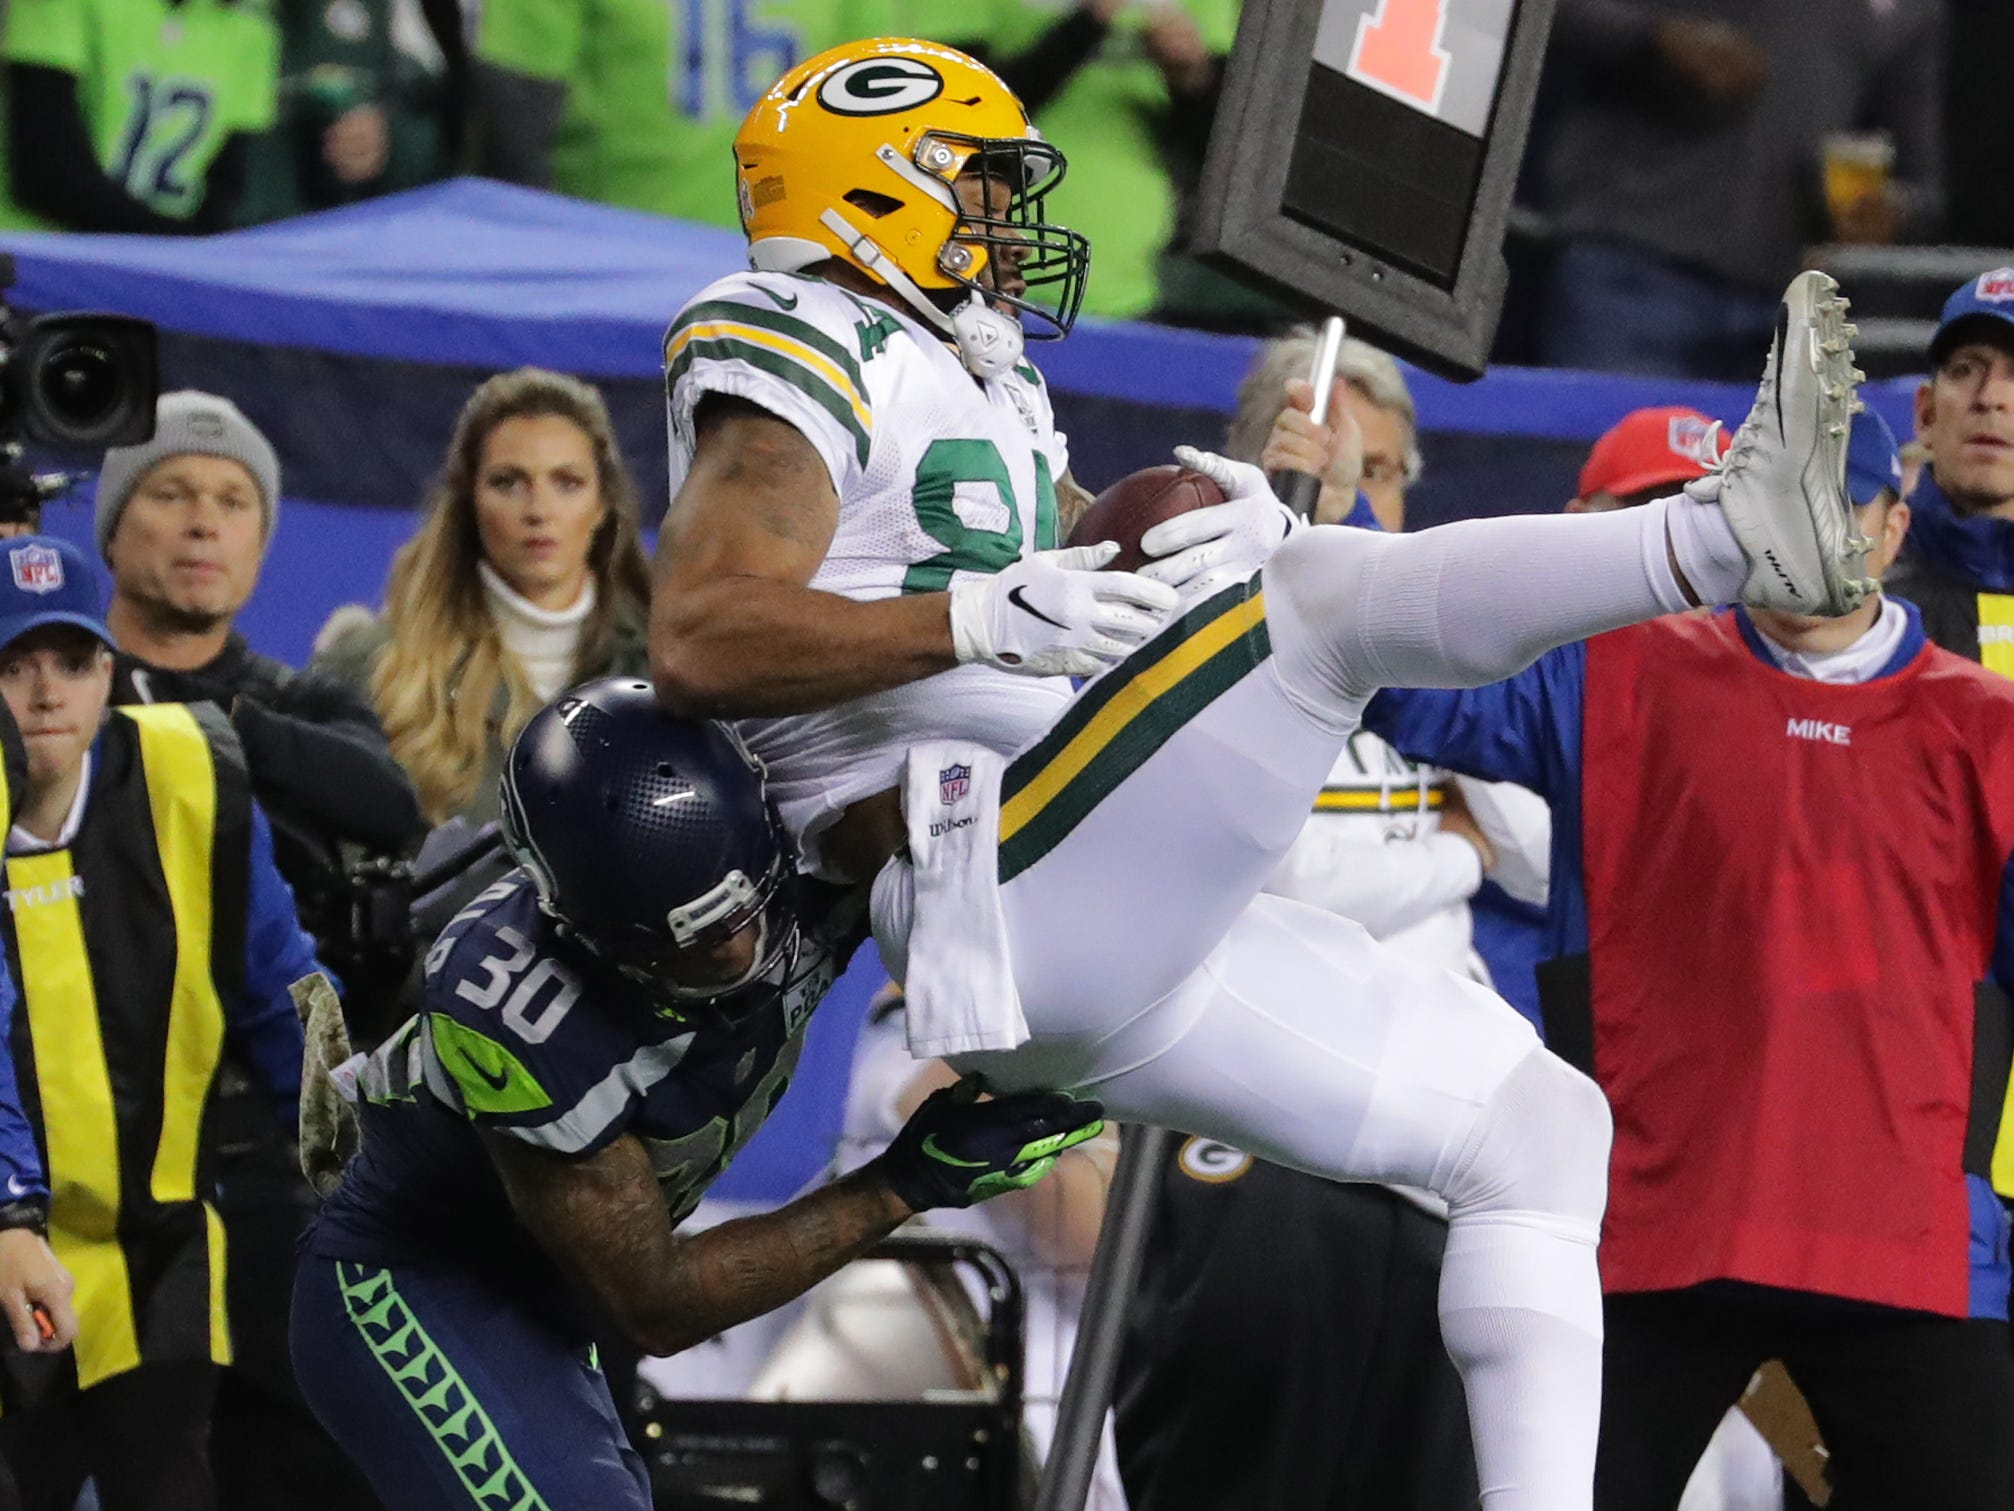 Green Bay Packers tight end Lance Kendricks (84) snares a three-yard reception while being covered by Seattle Seahawks strong safety Bradley McDougald (30) during the second quarter of their game Thursday, November 25, 2018 at CenturyLink Field in Seattle, Wash.  MARK HOFFMAN/MHOFFMAN@JOURNALSENTINEL.COM